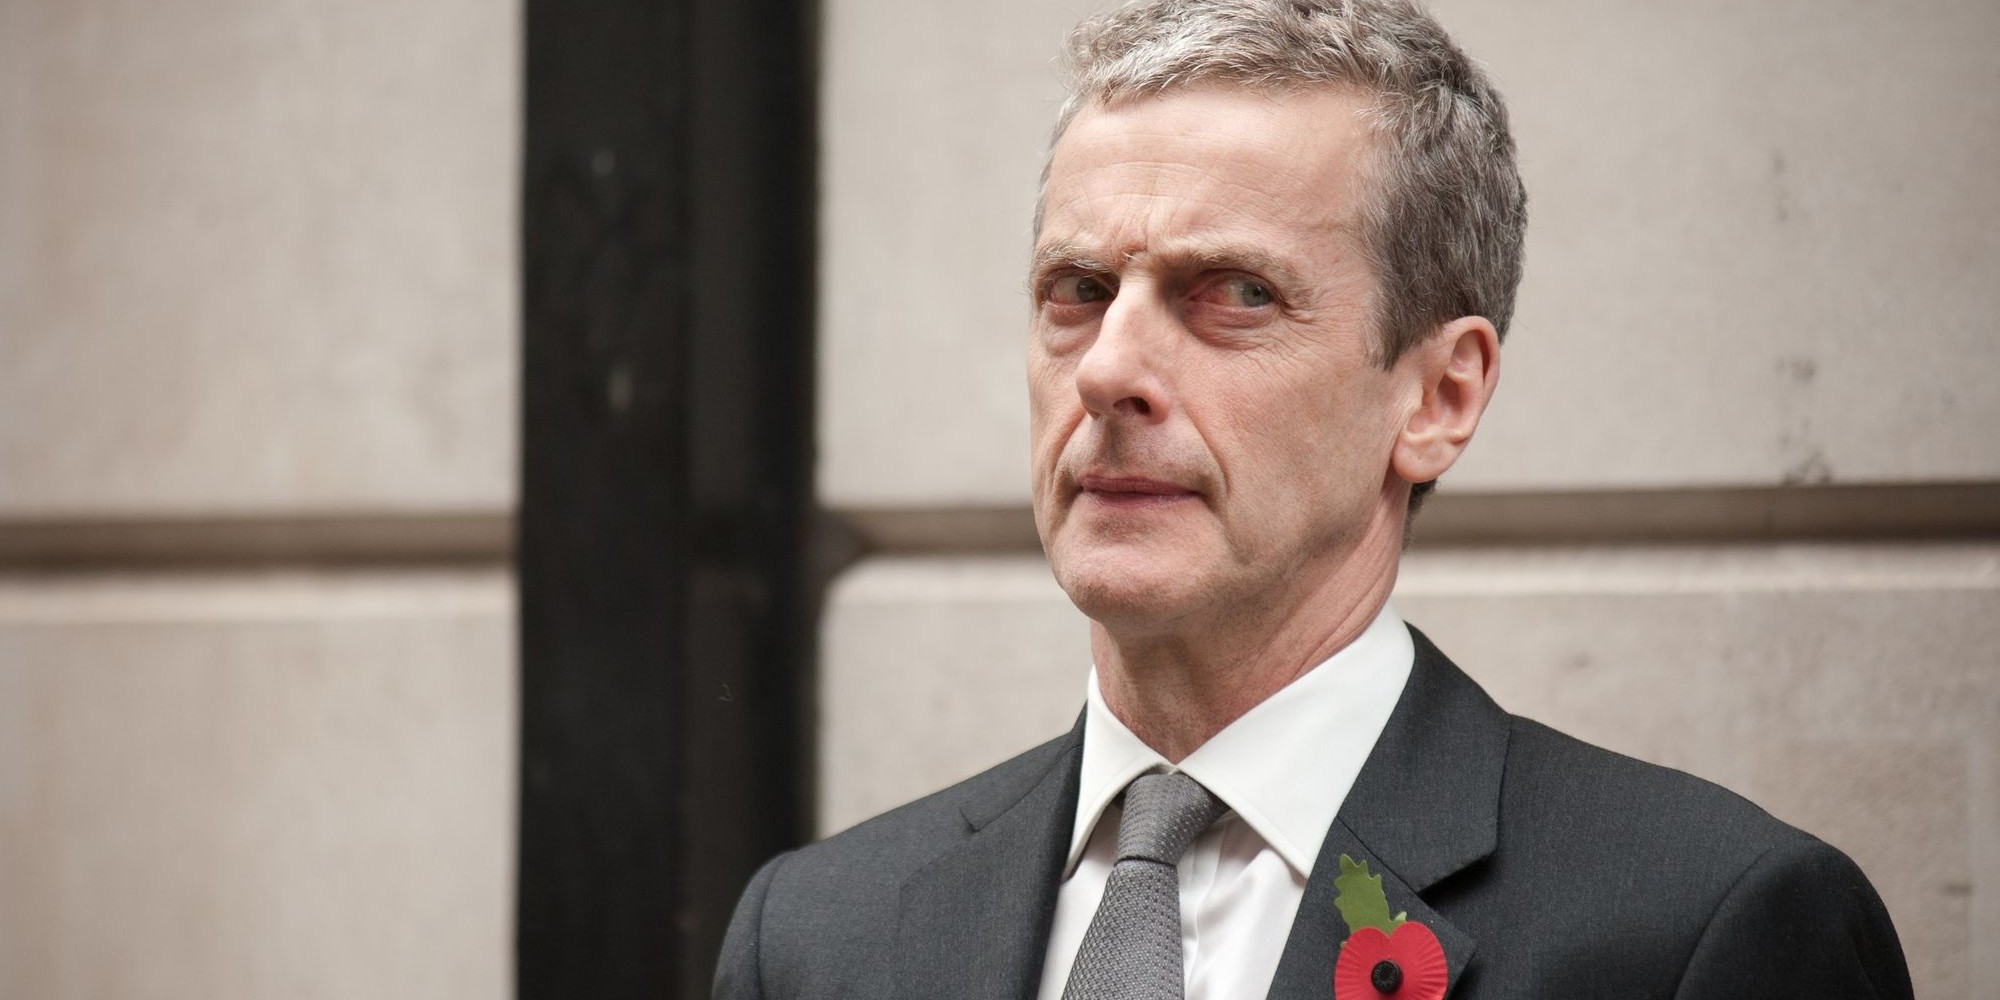 Peter Capaldi as Malcolm Tucker in The Thick of It In The Loop